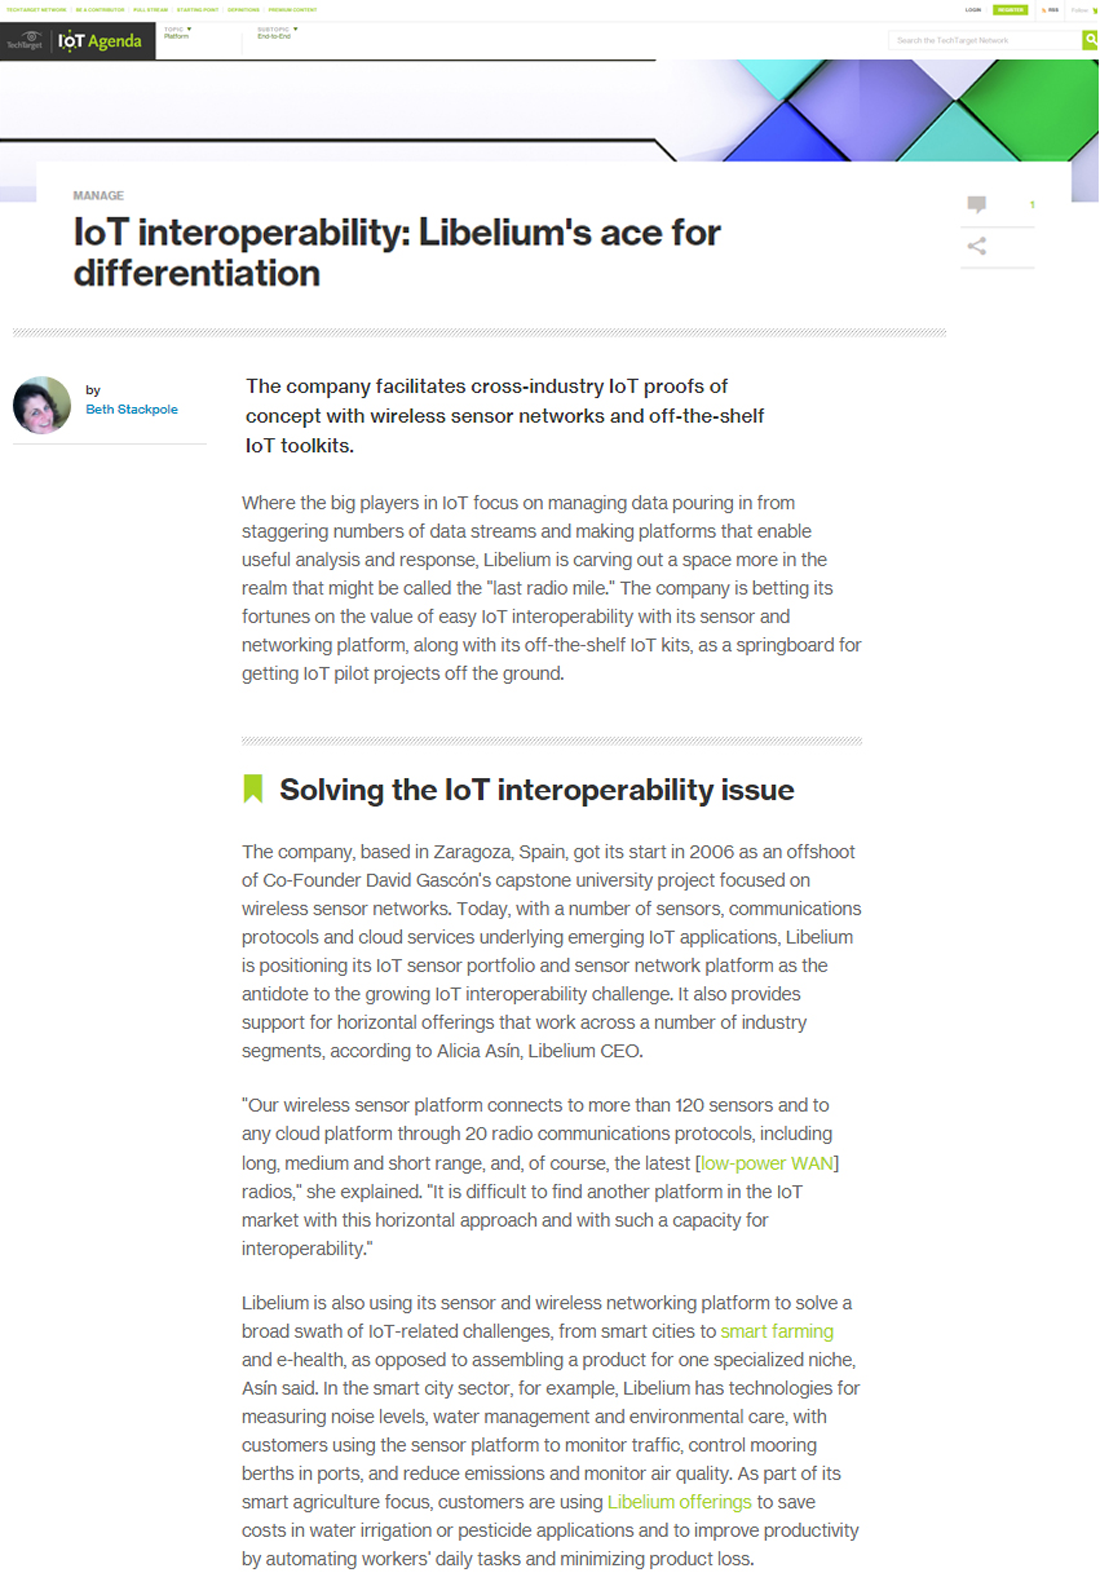 IoT Agenda – IoT interoperability: Libelium's ace for differentiation